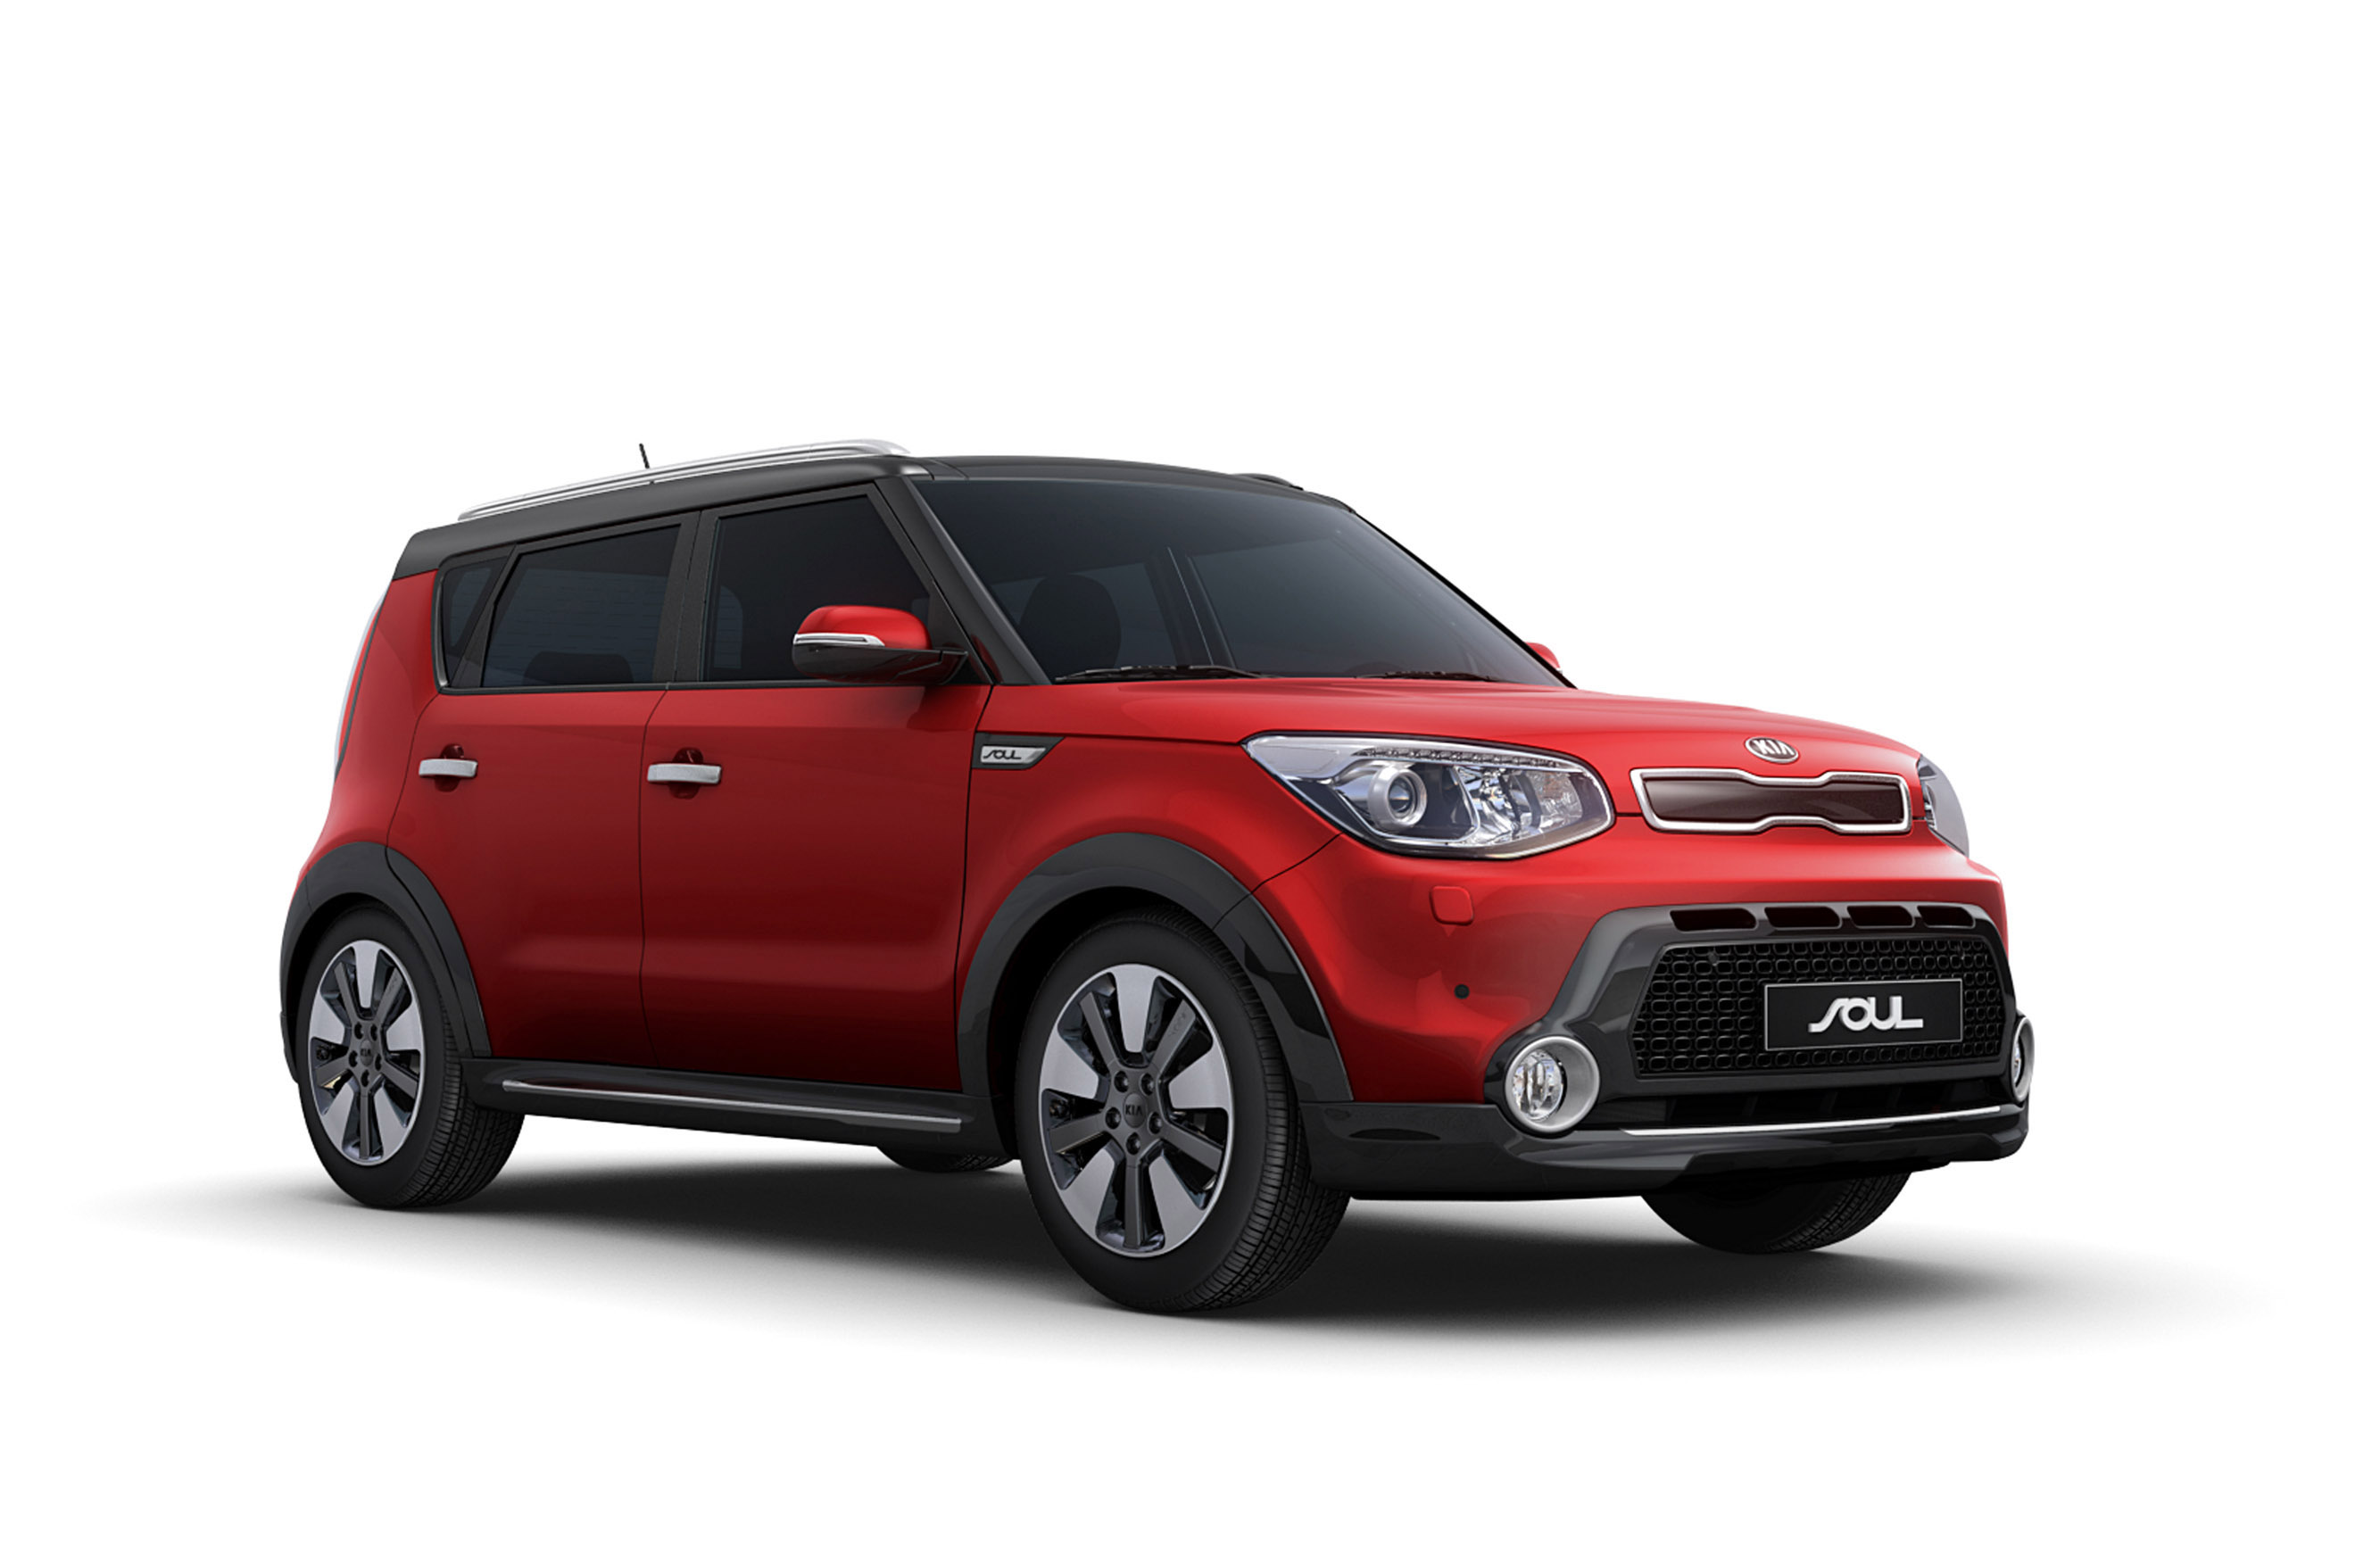 pre owned inventory base kia soul used hatchback denville fwd in